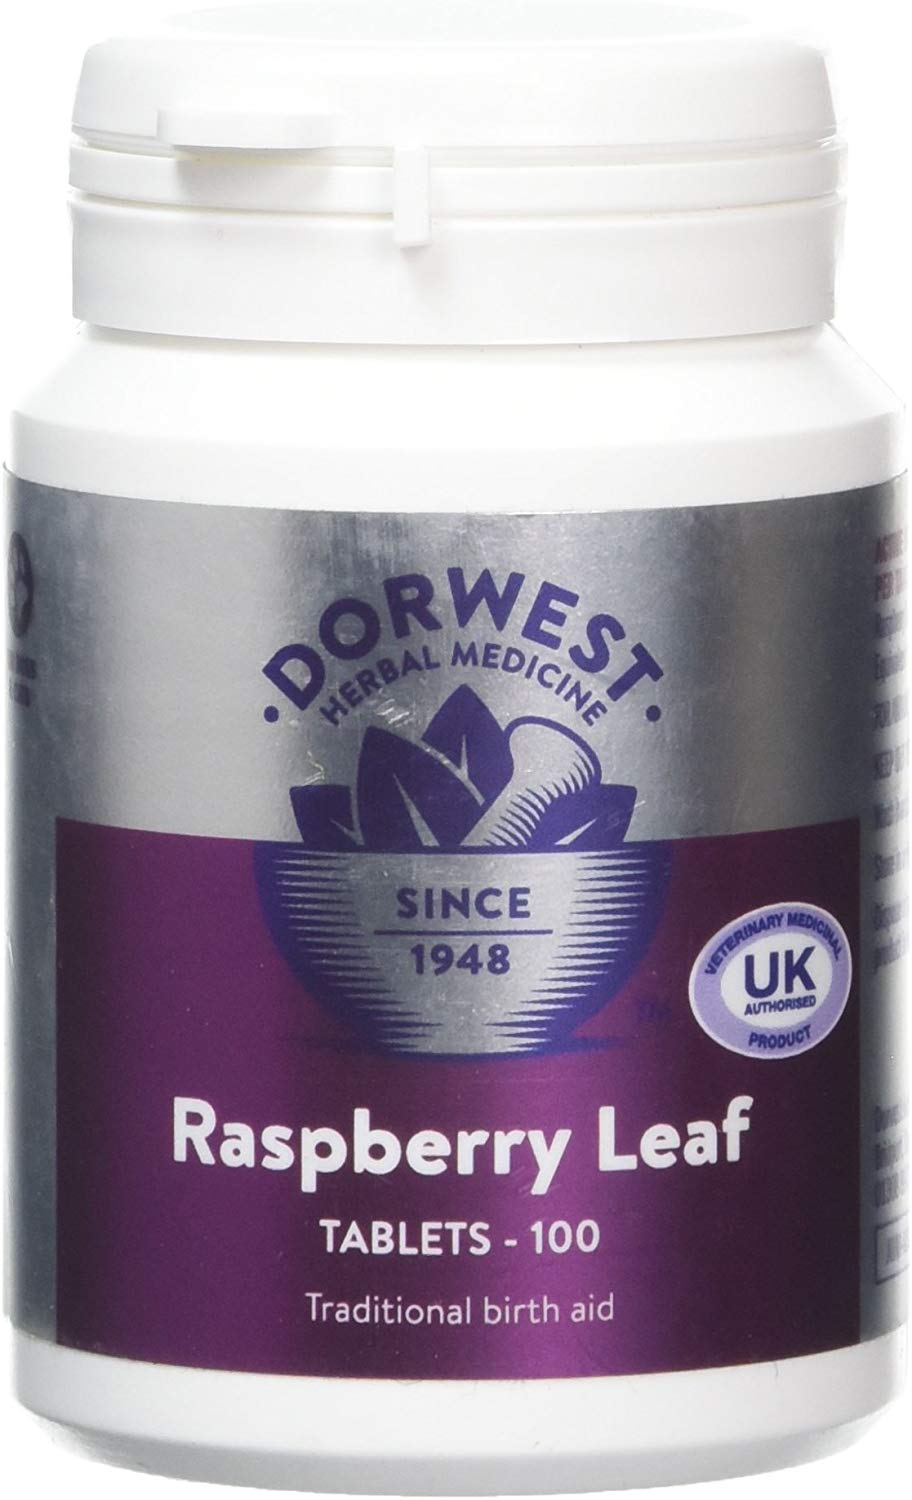 Dorwest Raspberry Leaf Tablets